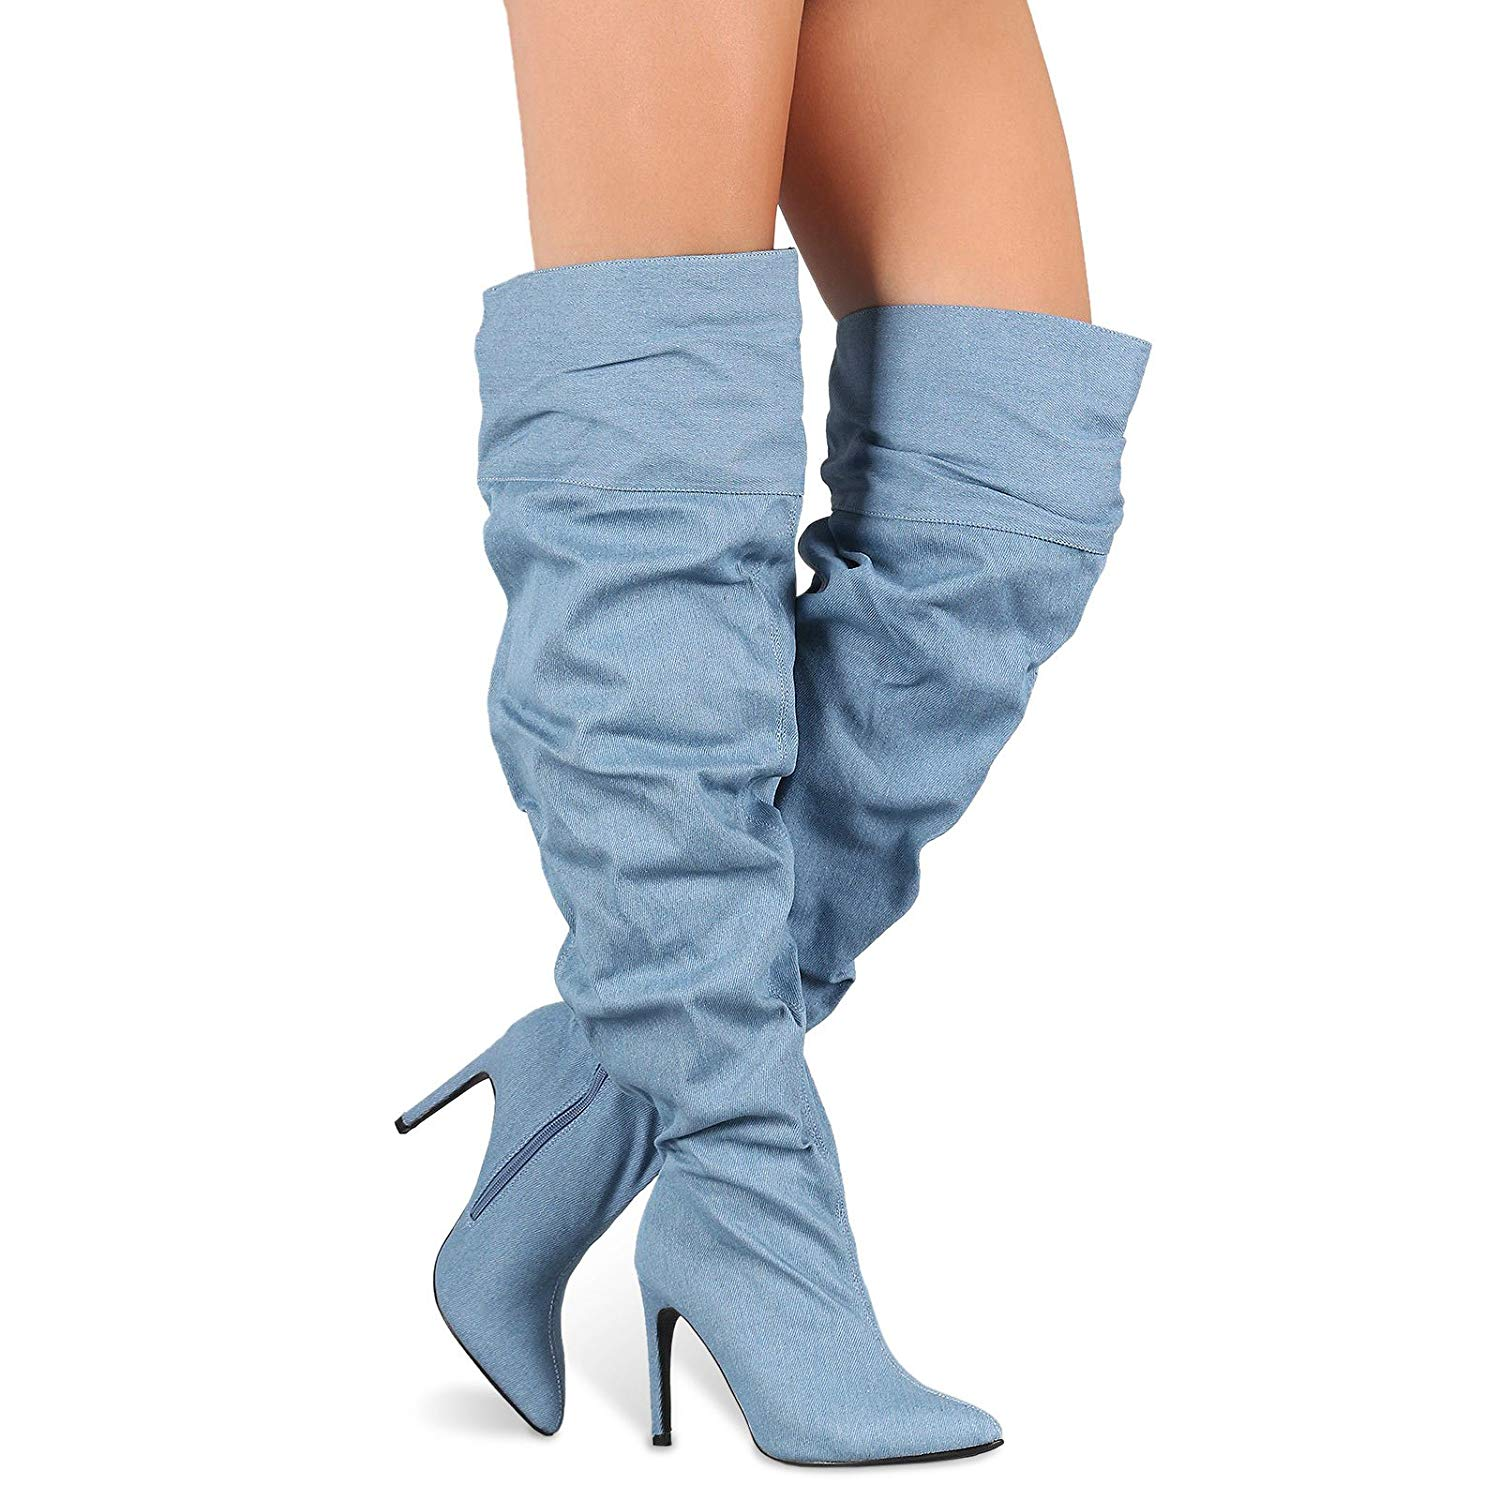 509de8c02 Get Quotations · Thigh High Over Knee Slouchy Oversized Pointy Toe High  Heel Boots